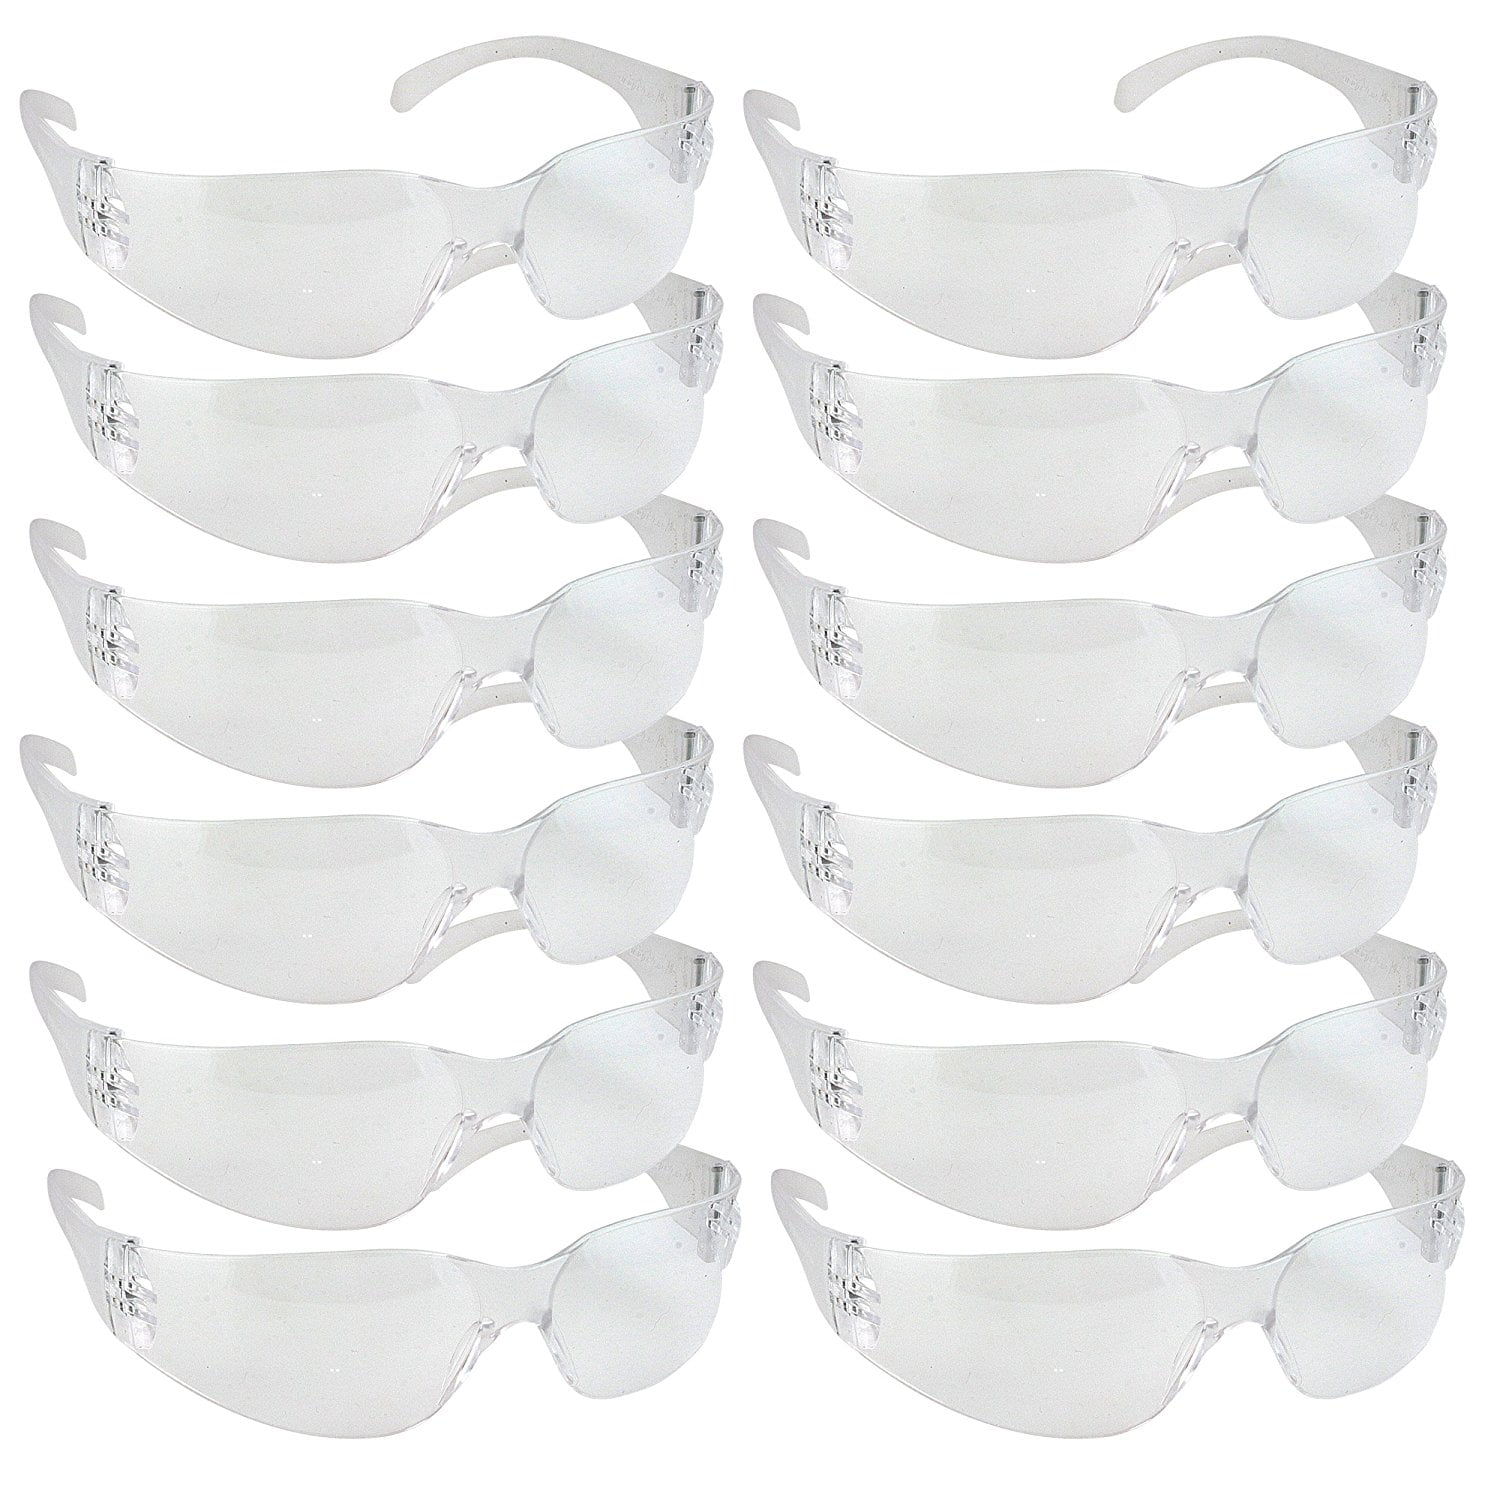 Safety Glasses, One Size, Clear Lens (Pack of 12) by Bison Life